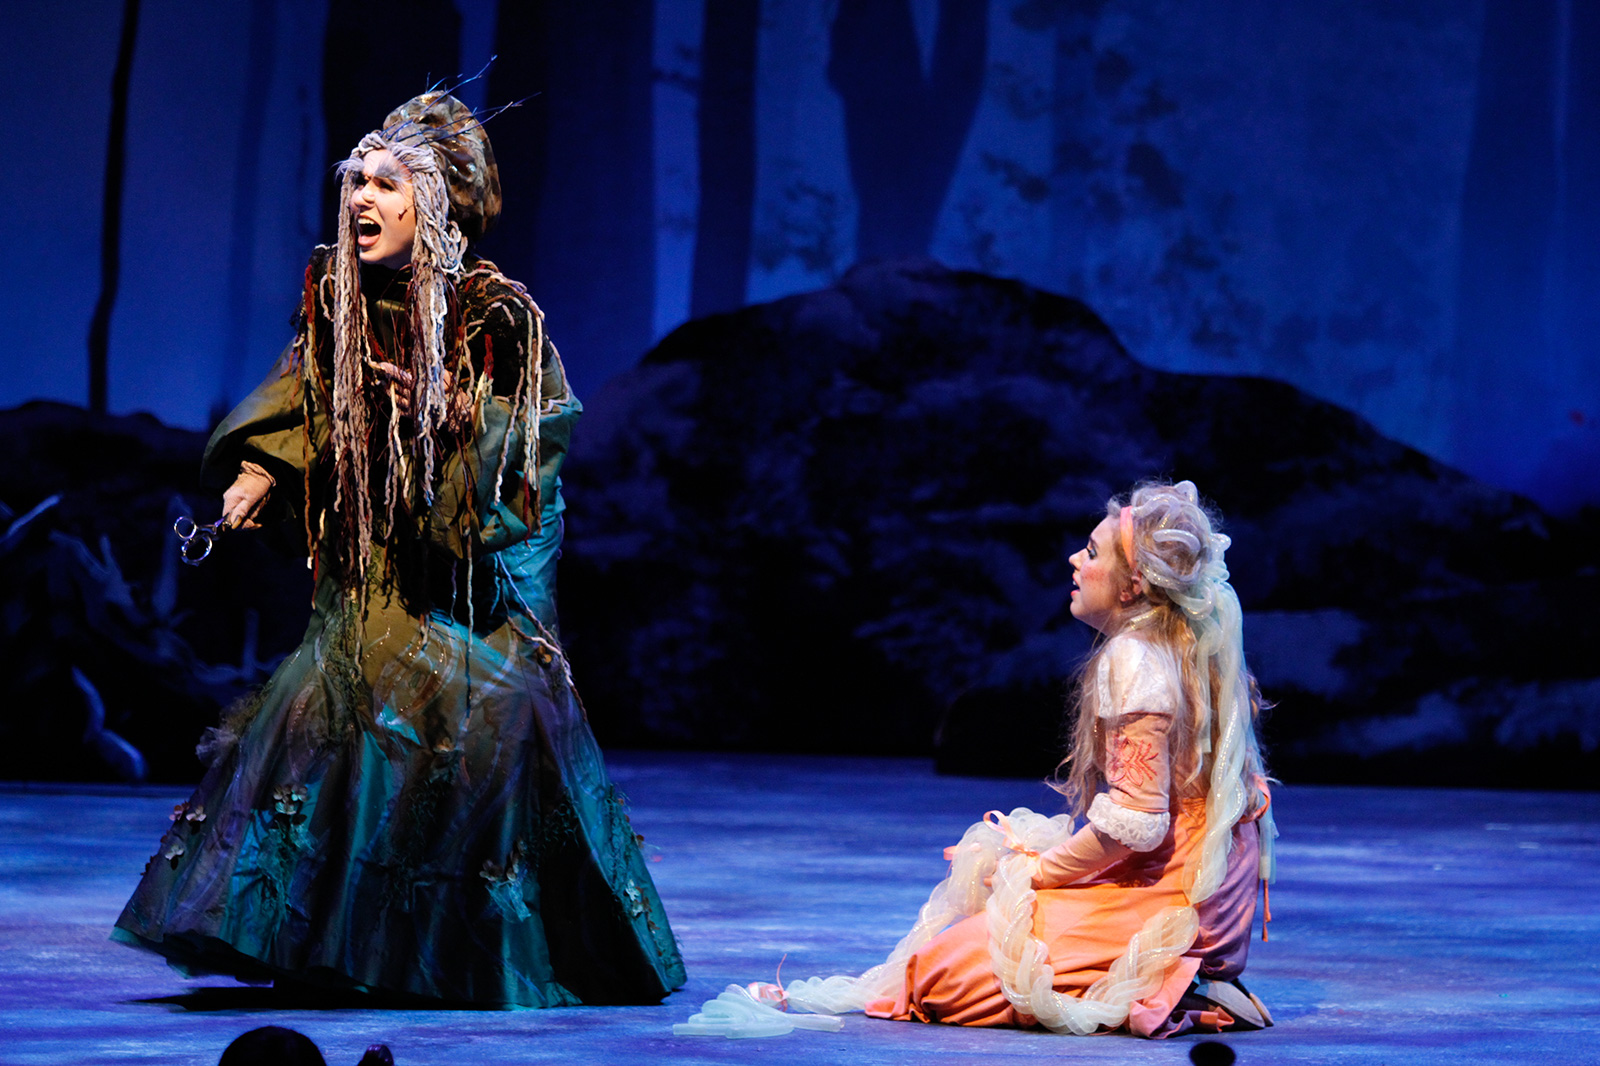 File Into The Woods 2014 2015 17241703894 Jpg Wikimedia Commons